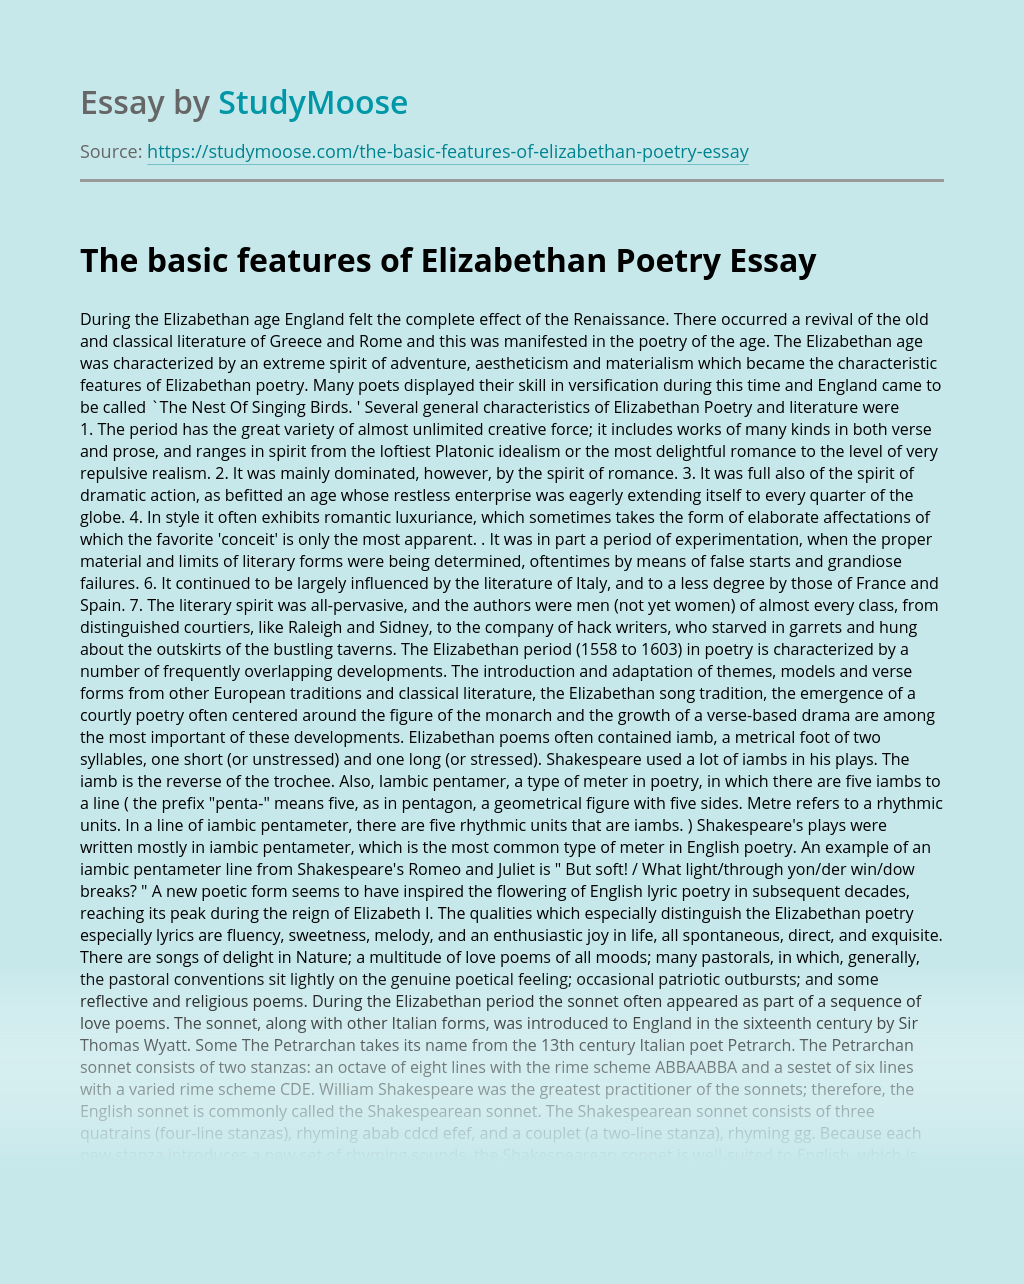 The basic features of Elizabethan Poetry